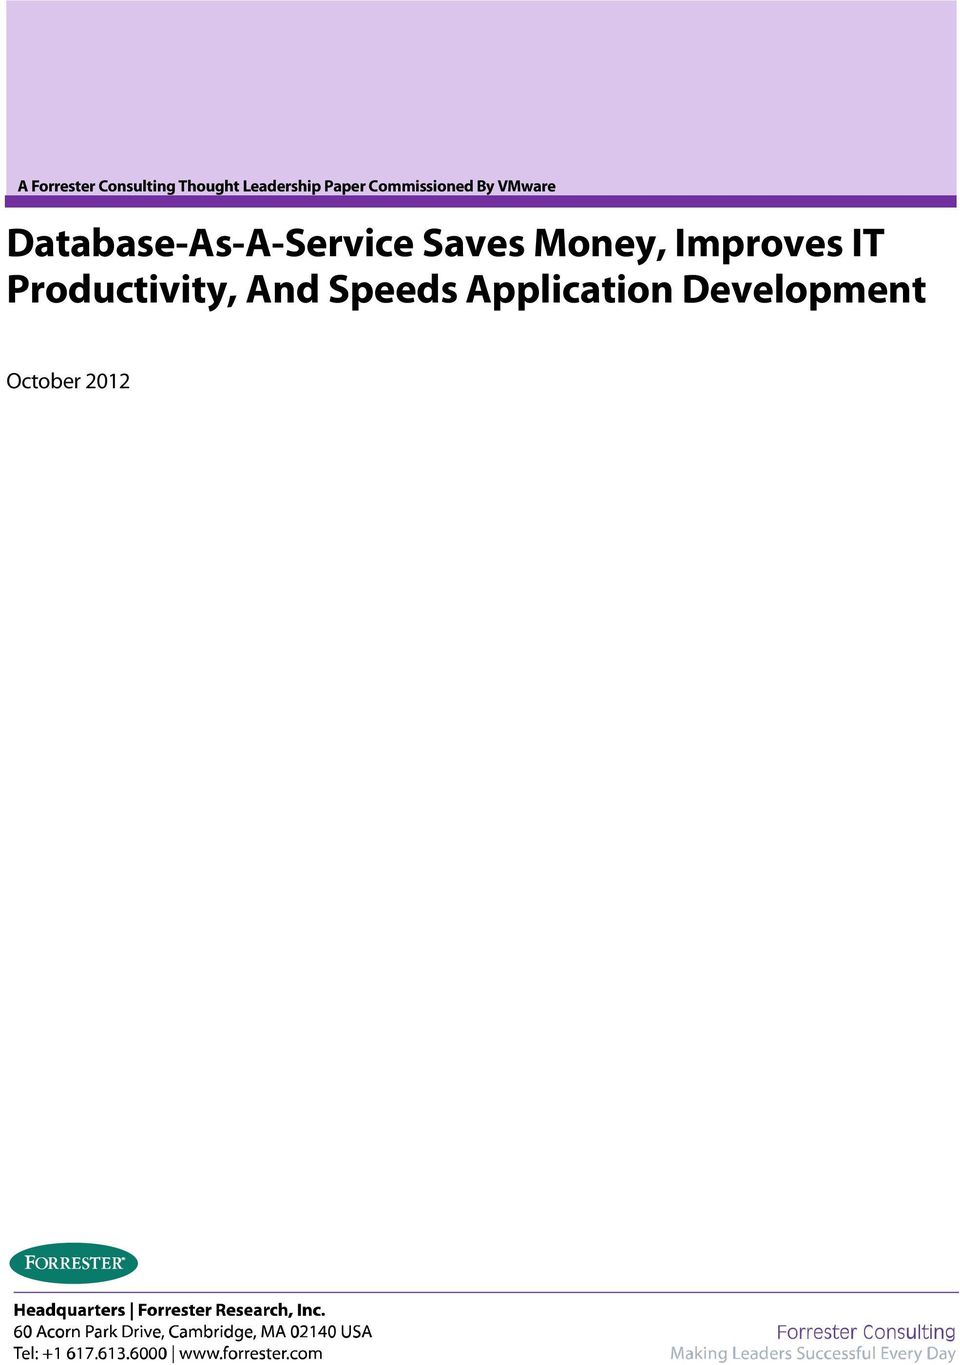 Database-As-A-Service Saves Money, Improves